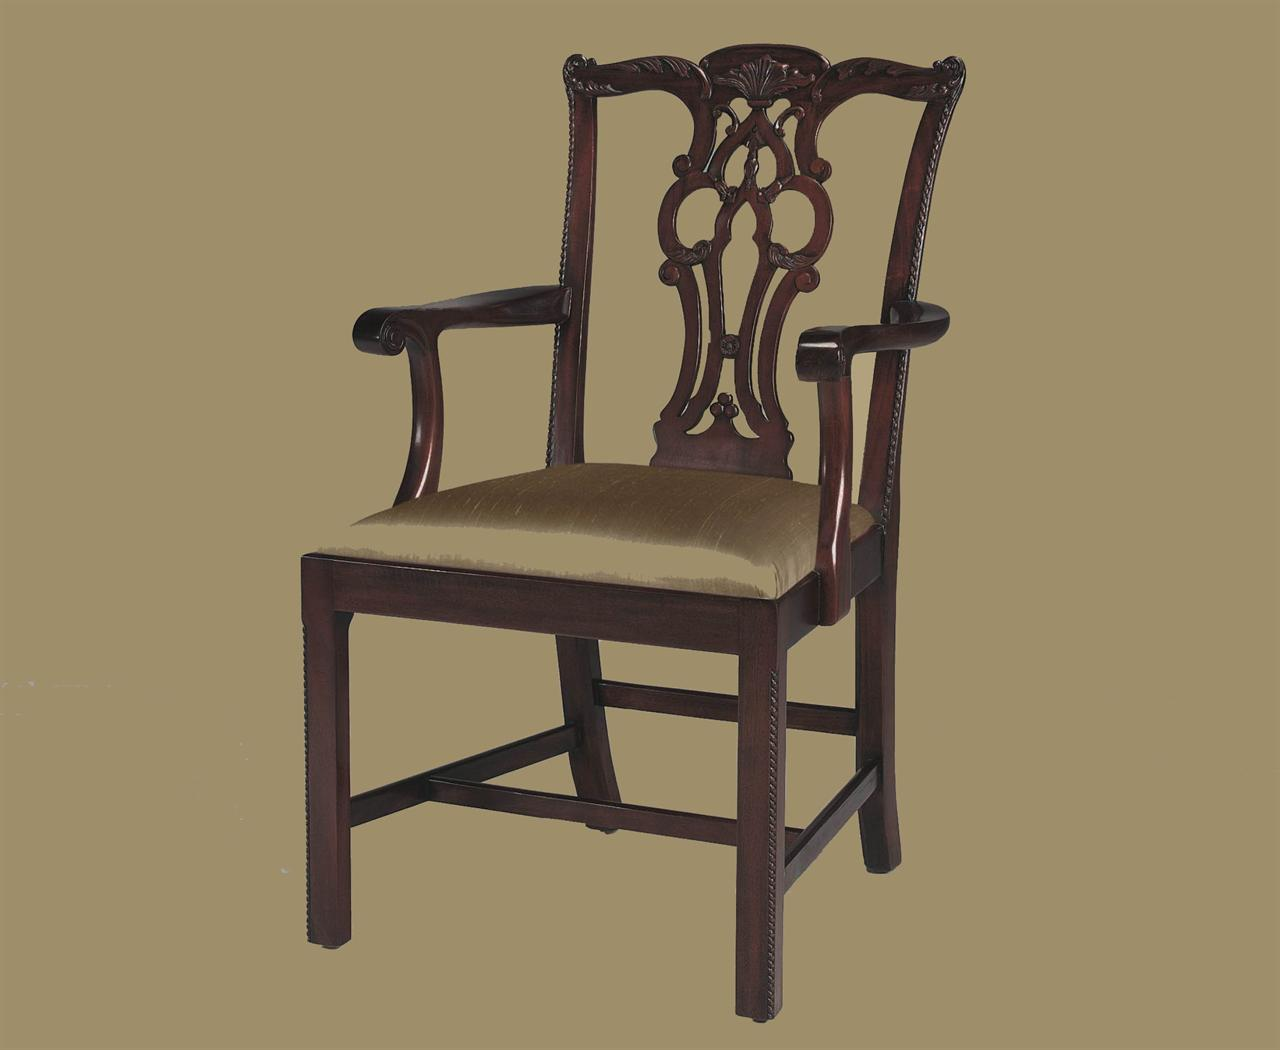 Straight Leg Chippendale Chairs, Formal Dining Chairs